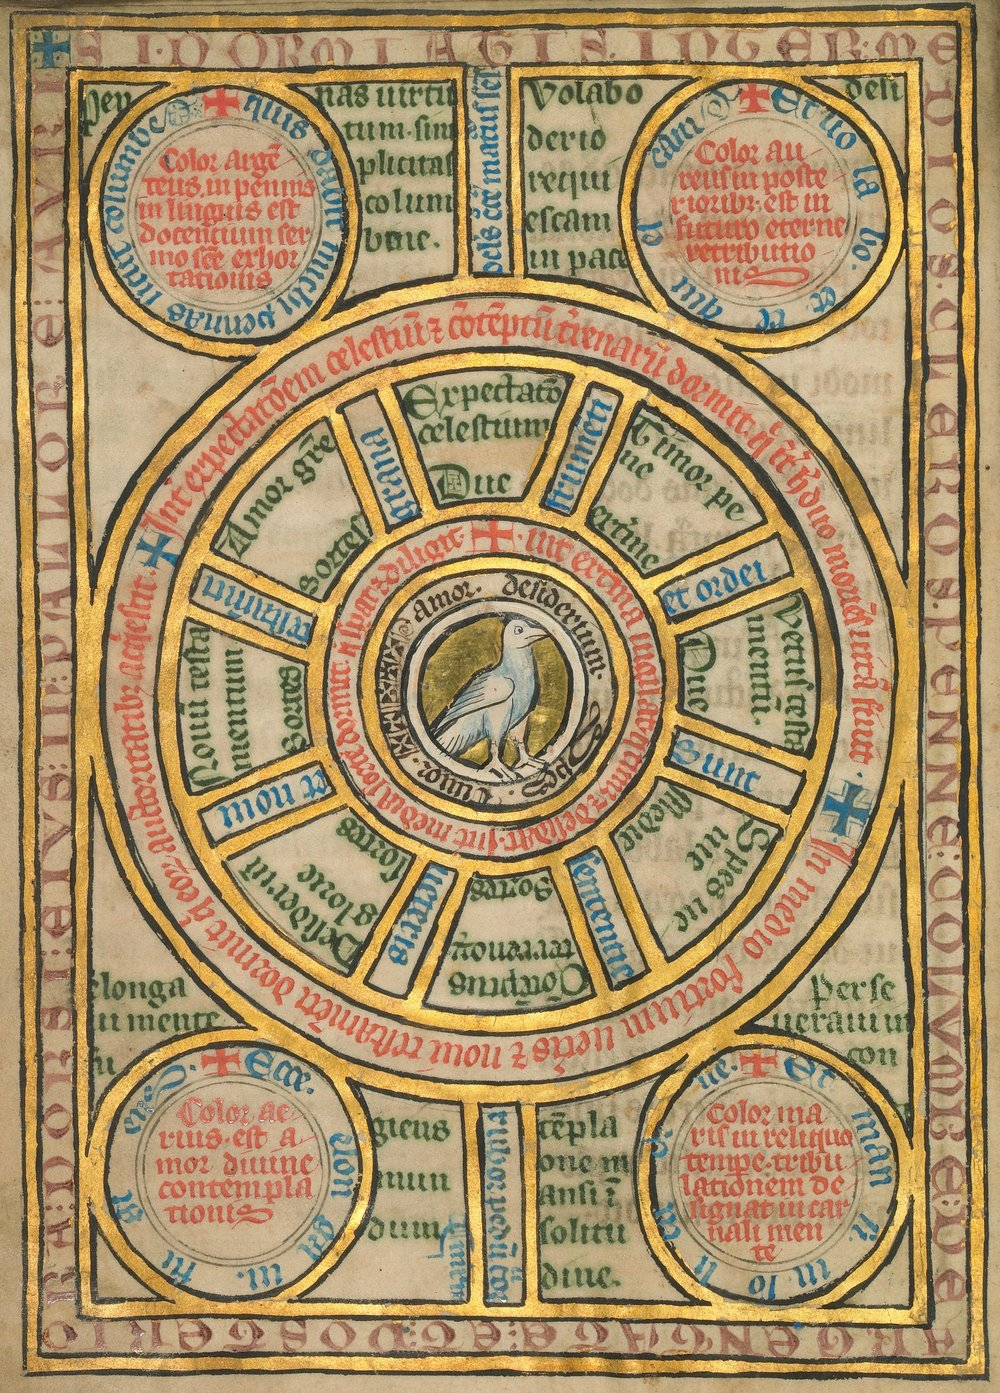 Diagrama da pomba, Ms. Ludwig XV 4 (França, último quartel do século XIII), fol. 2v. The J. Paul Getty Museum, Los Angeles.